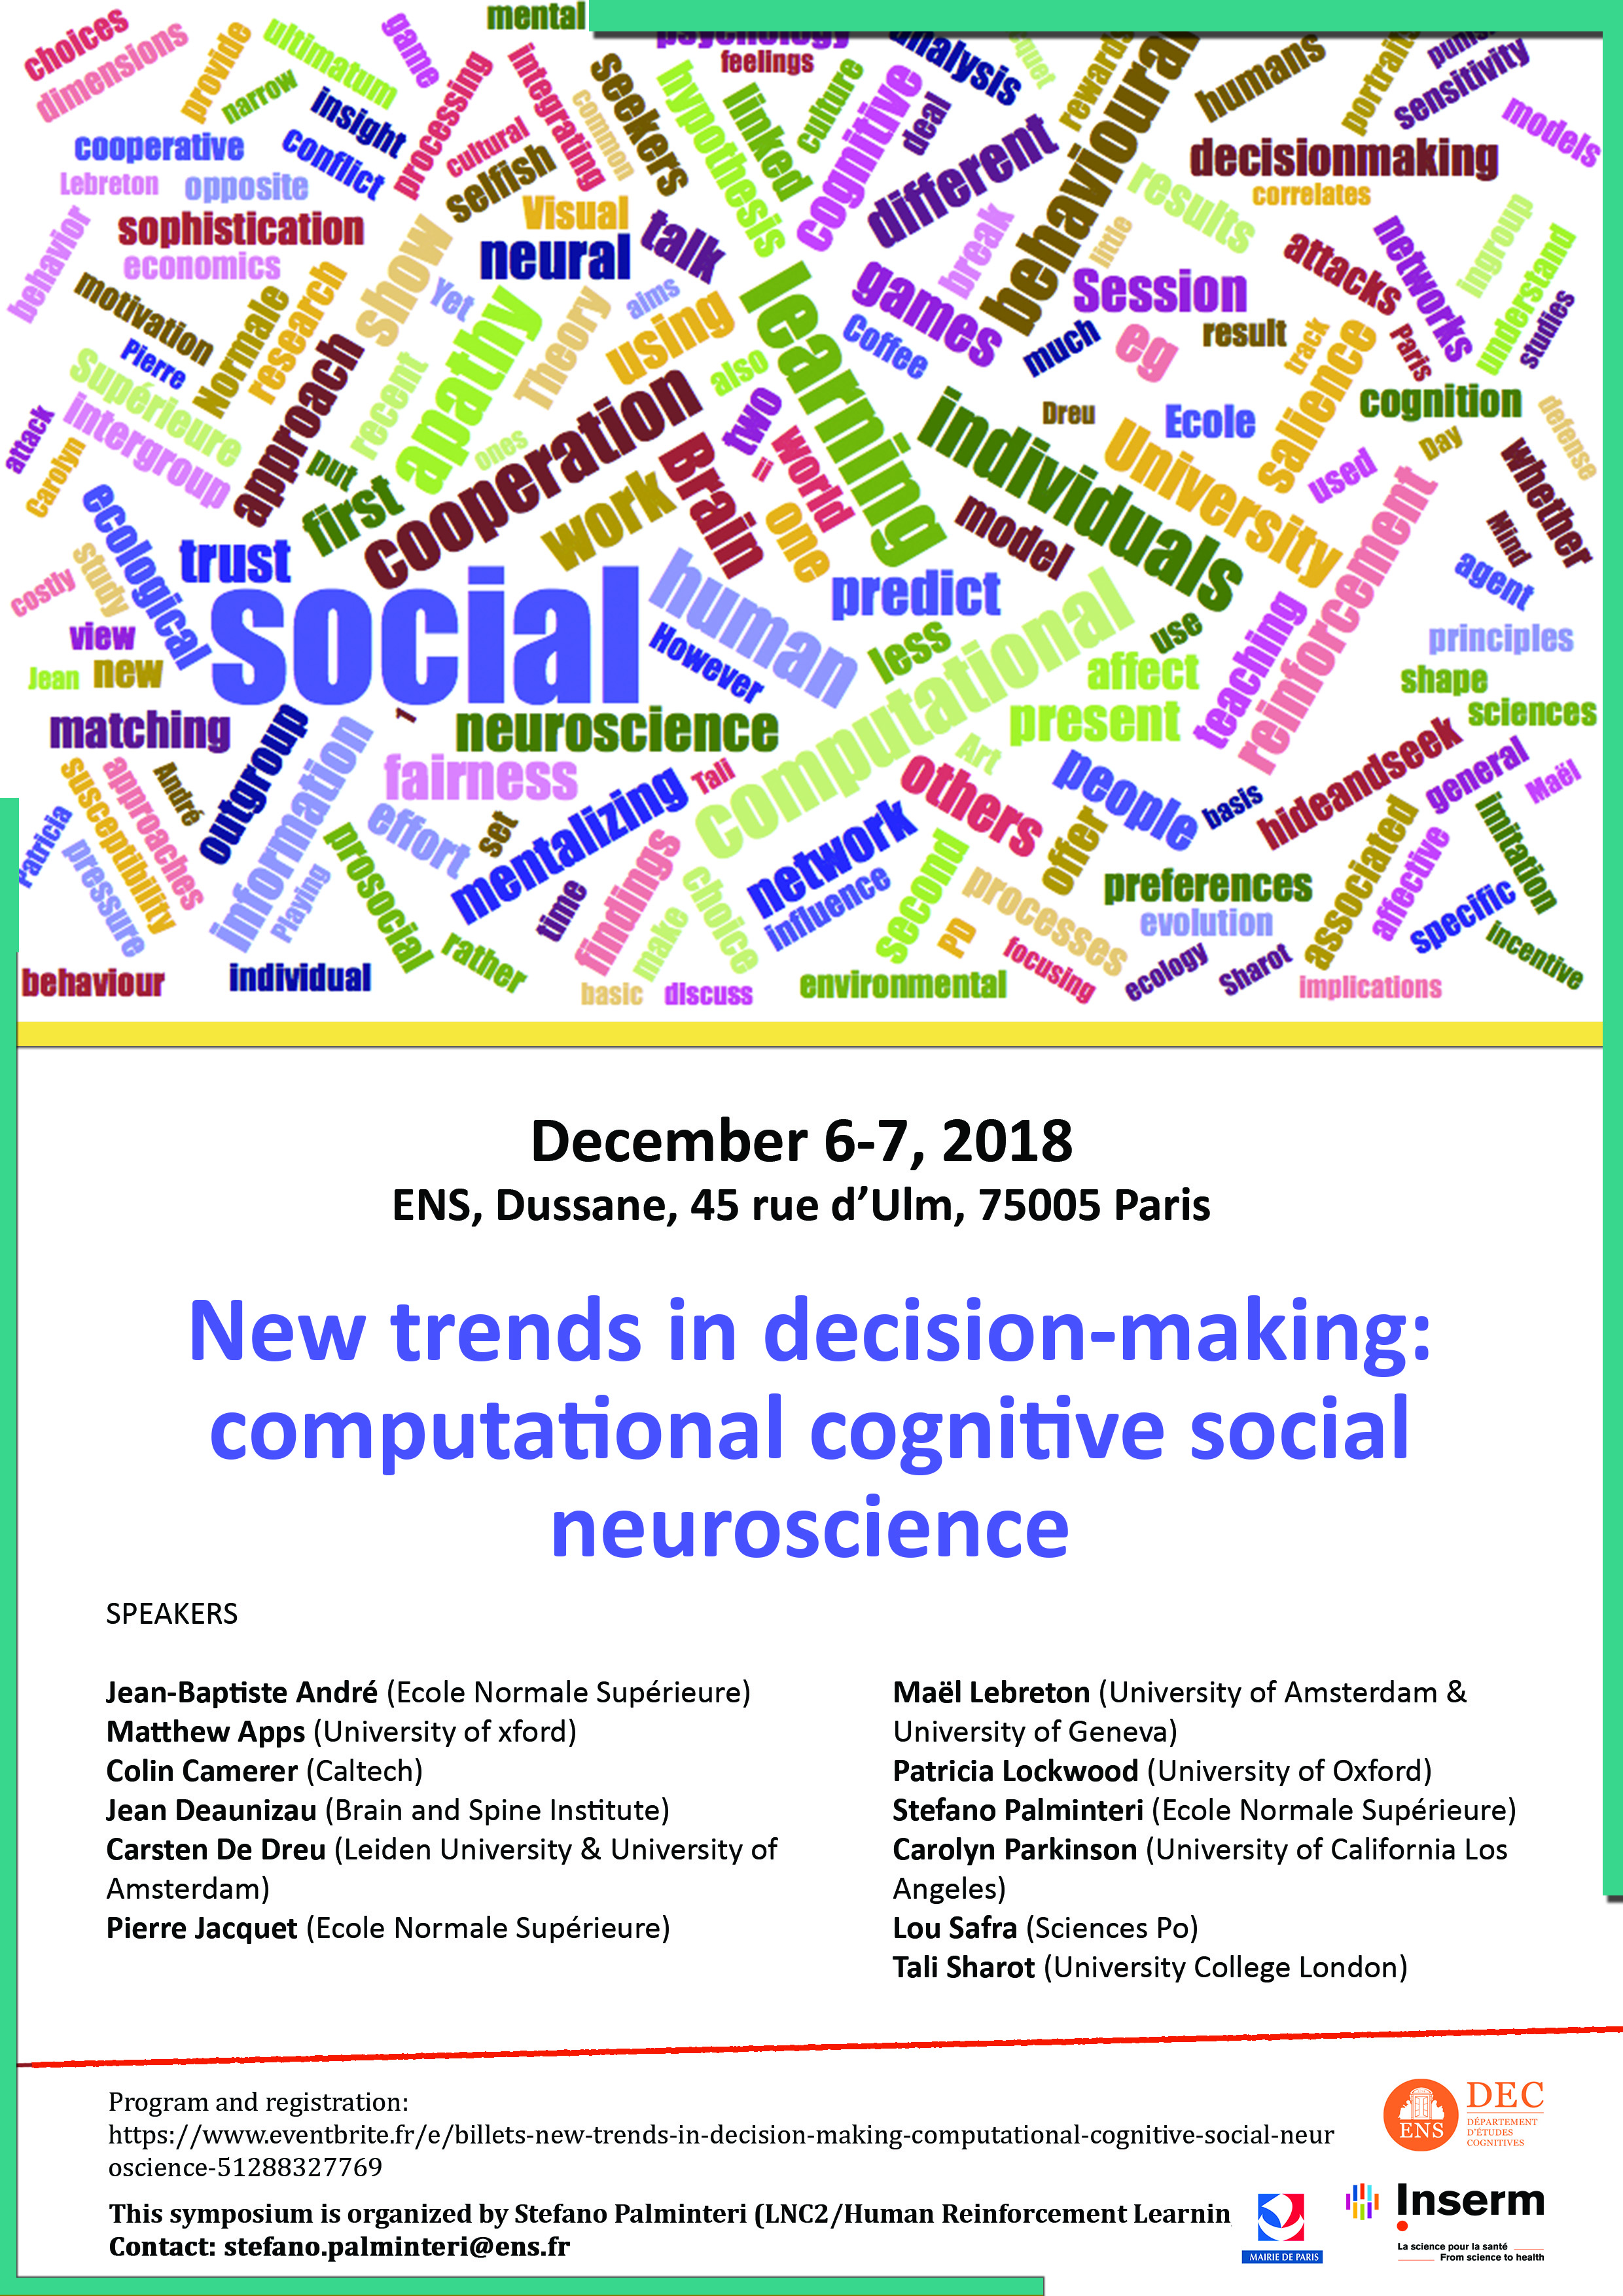 New trends in decision-making: computational cognitive social neuroscience